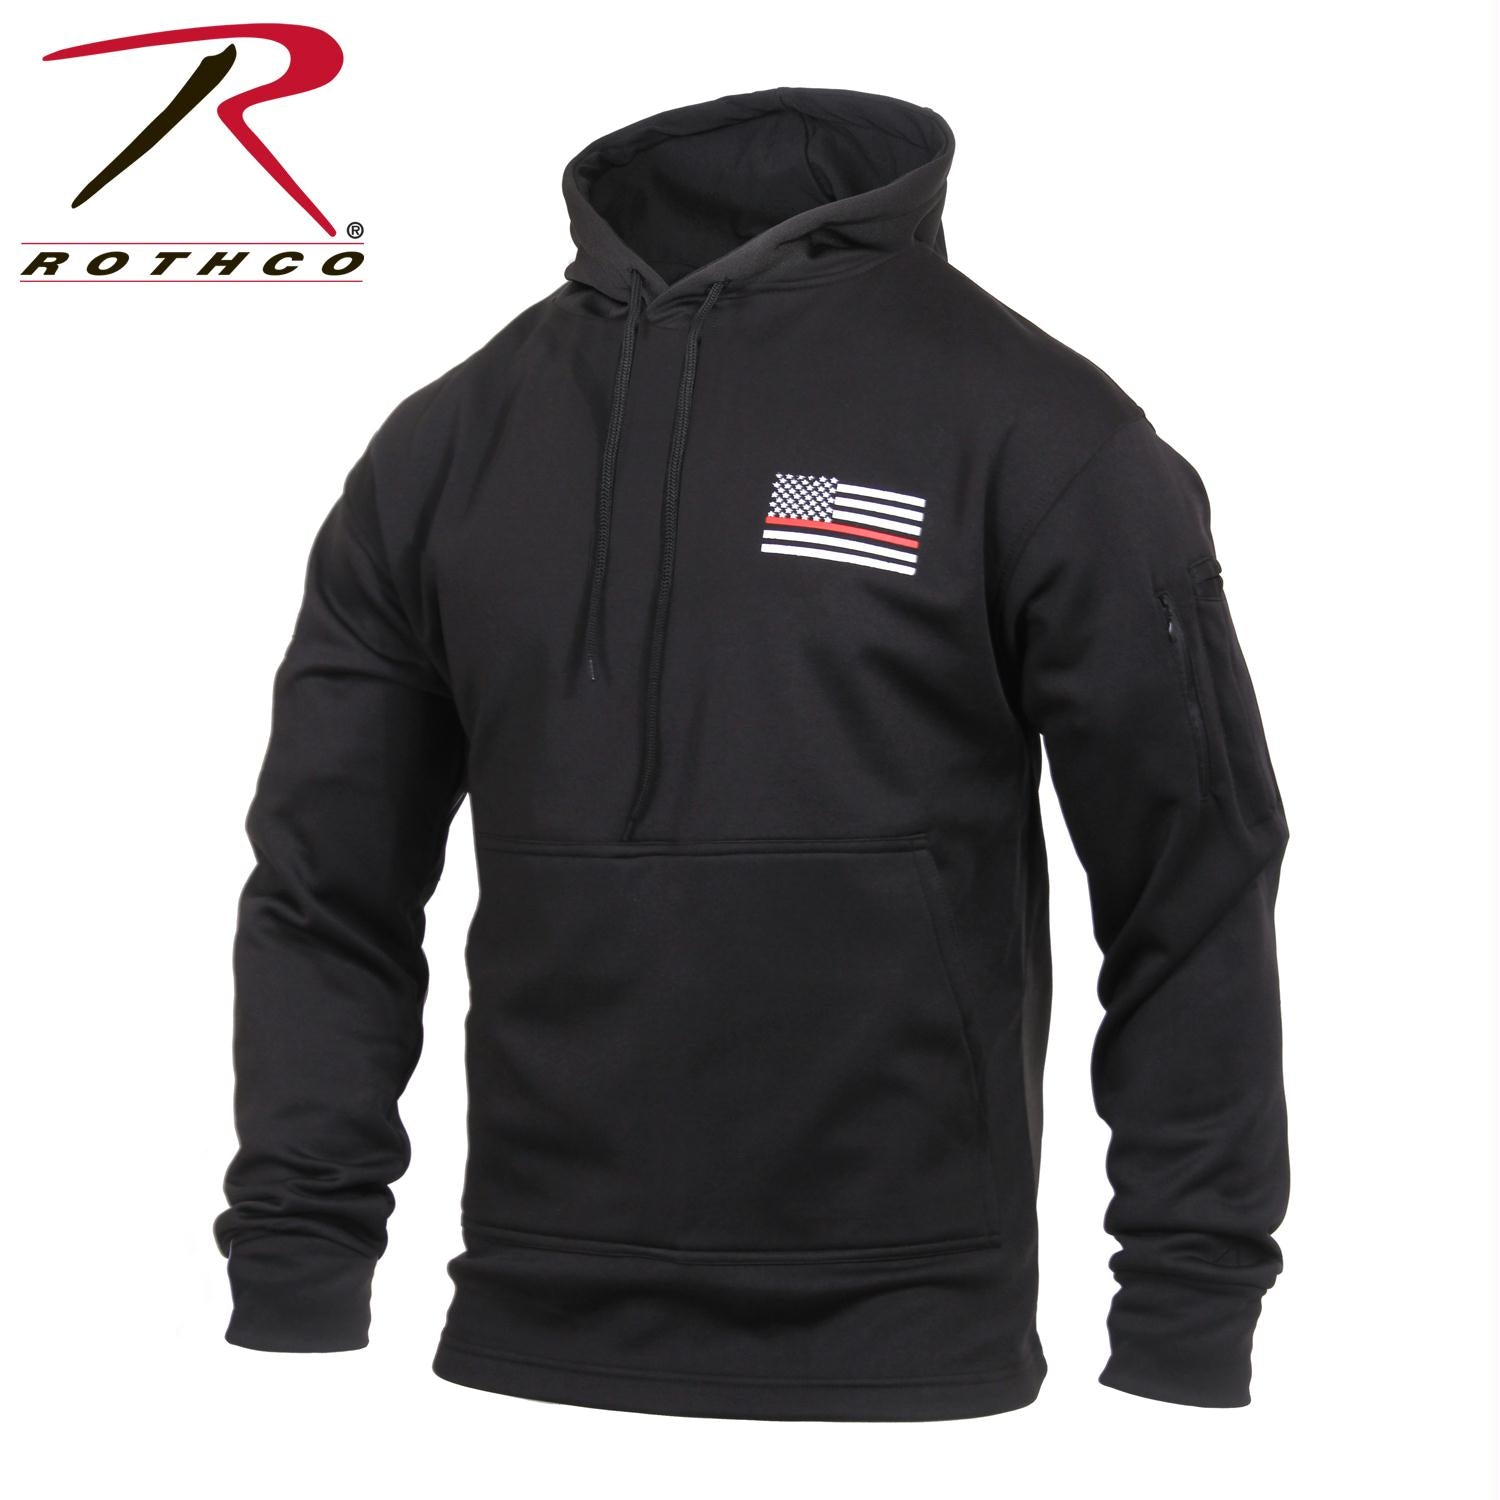 Rothco Thin Red Line Concealed Carry Hoodie - Black / L